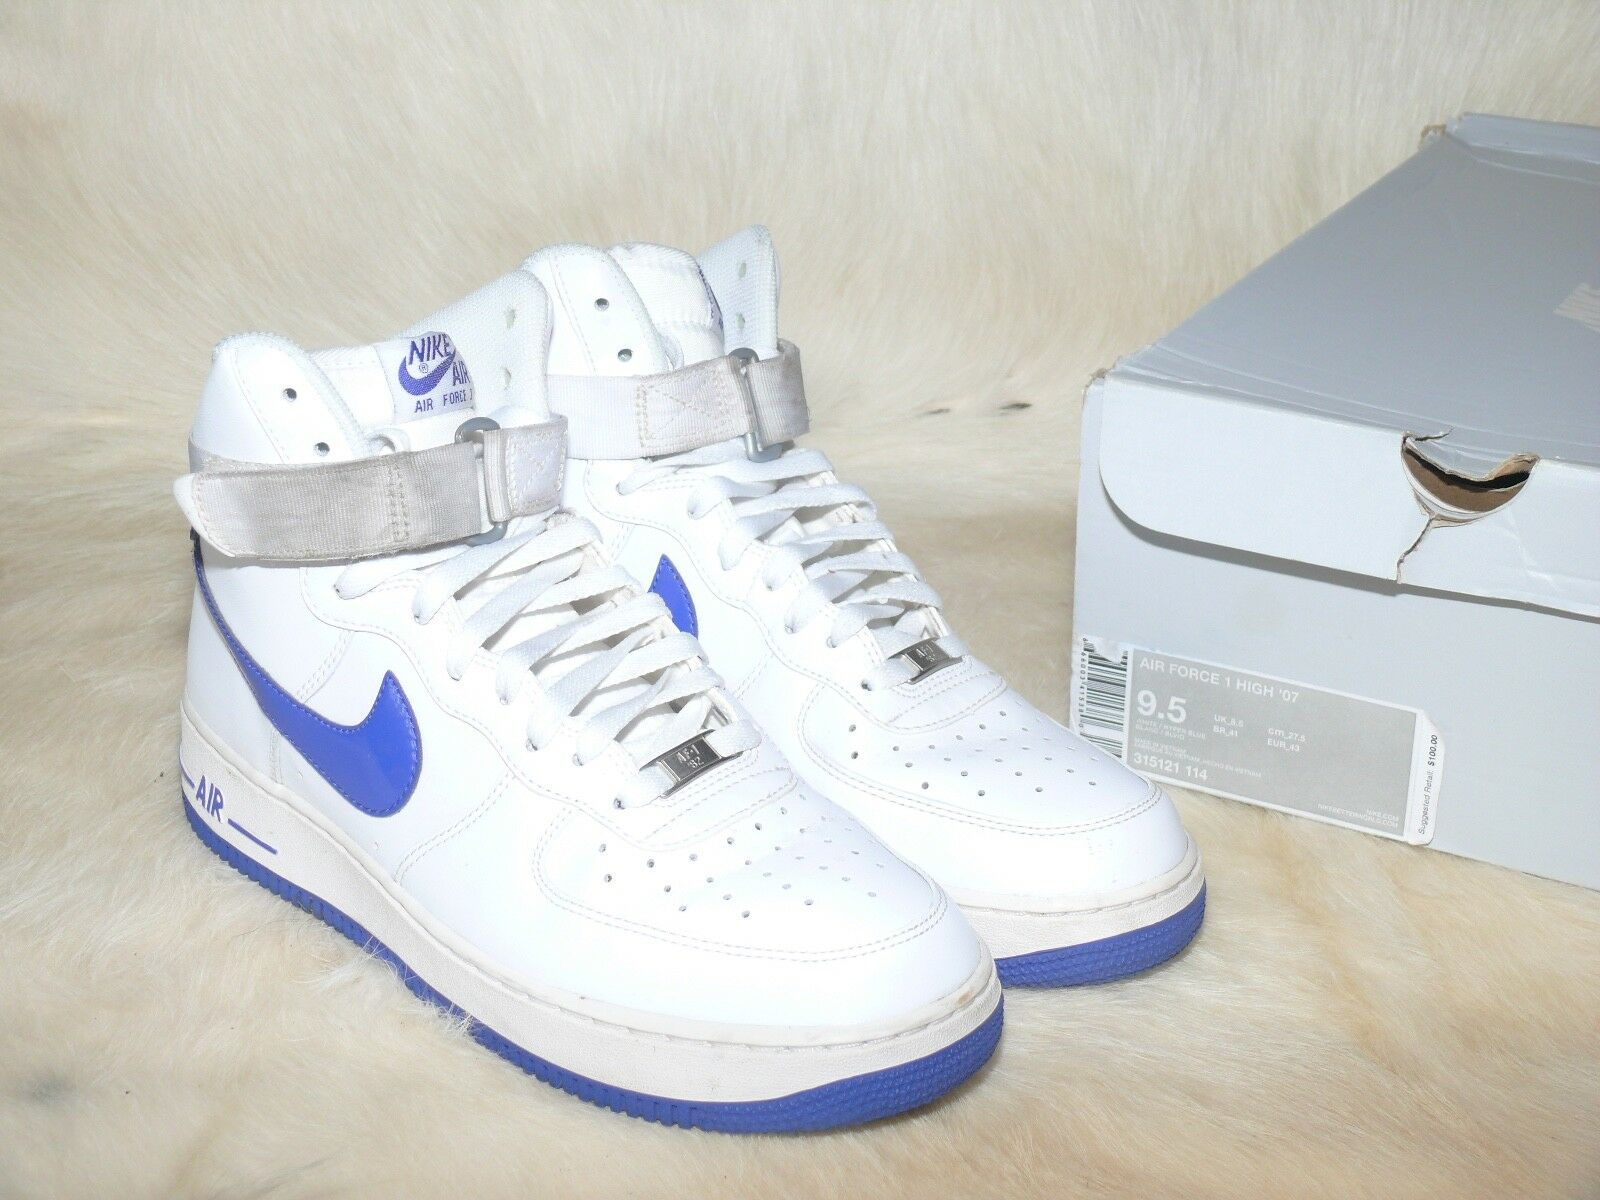 NIKE MEN WHITE/HYPER BLUE AIR FORCE 1 HIGH '07 315121-114 SZ 9.5 US W/ ORIGI BOX